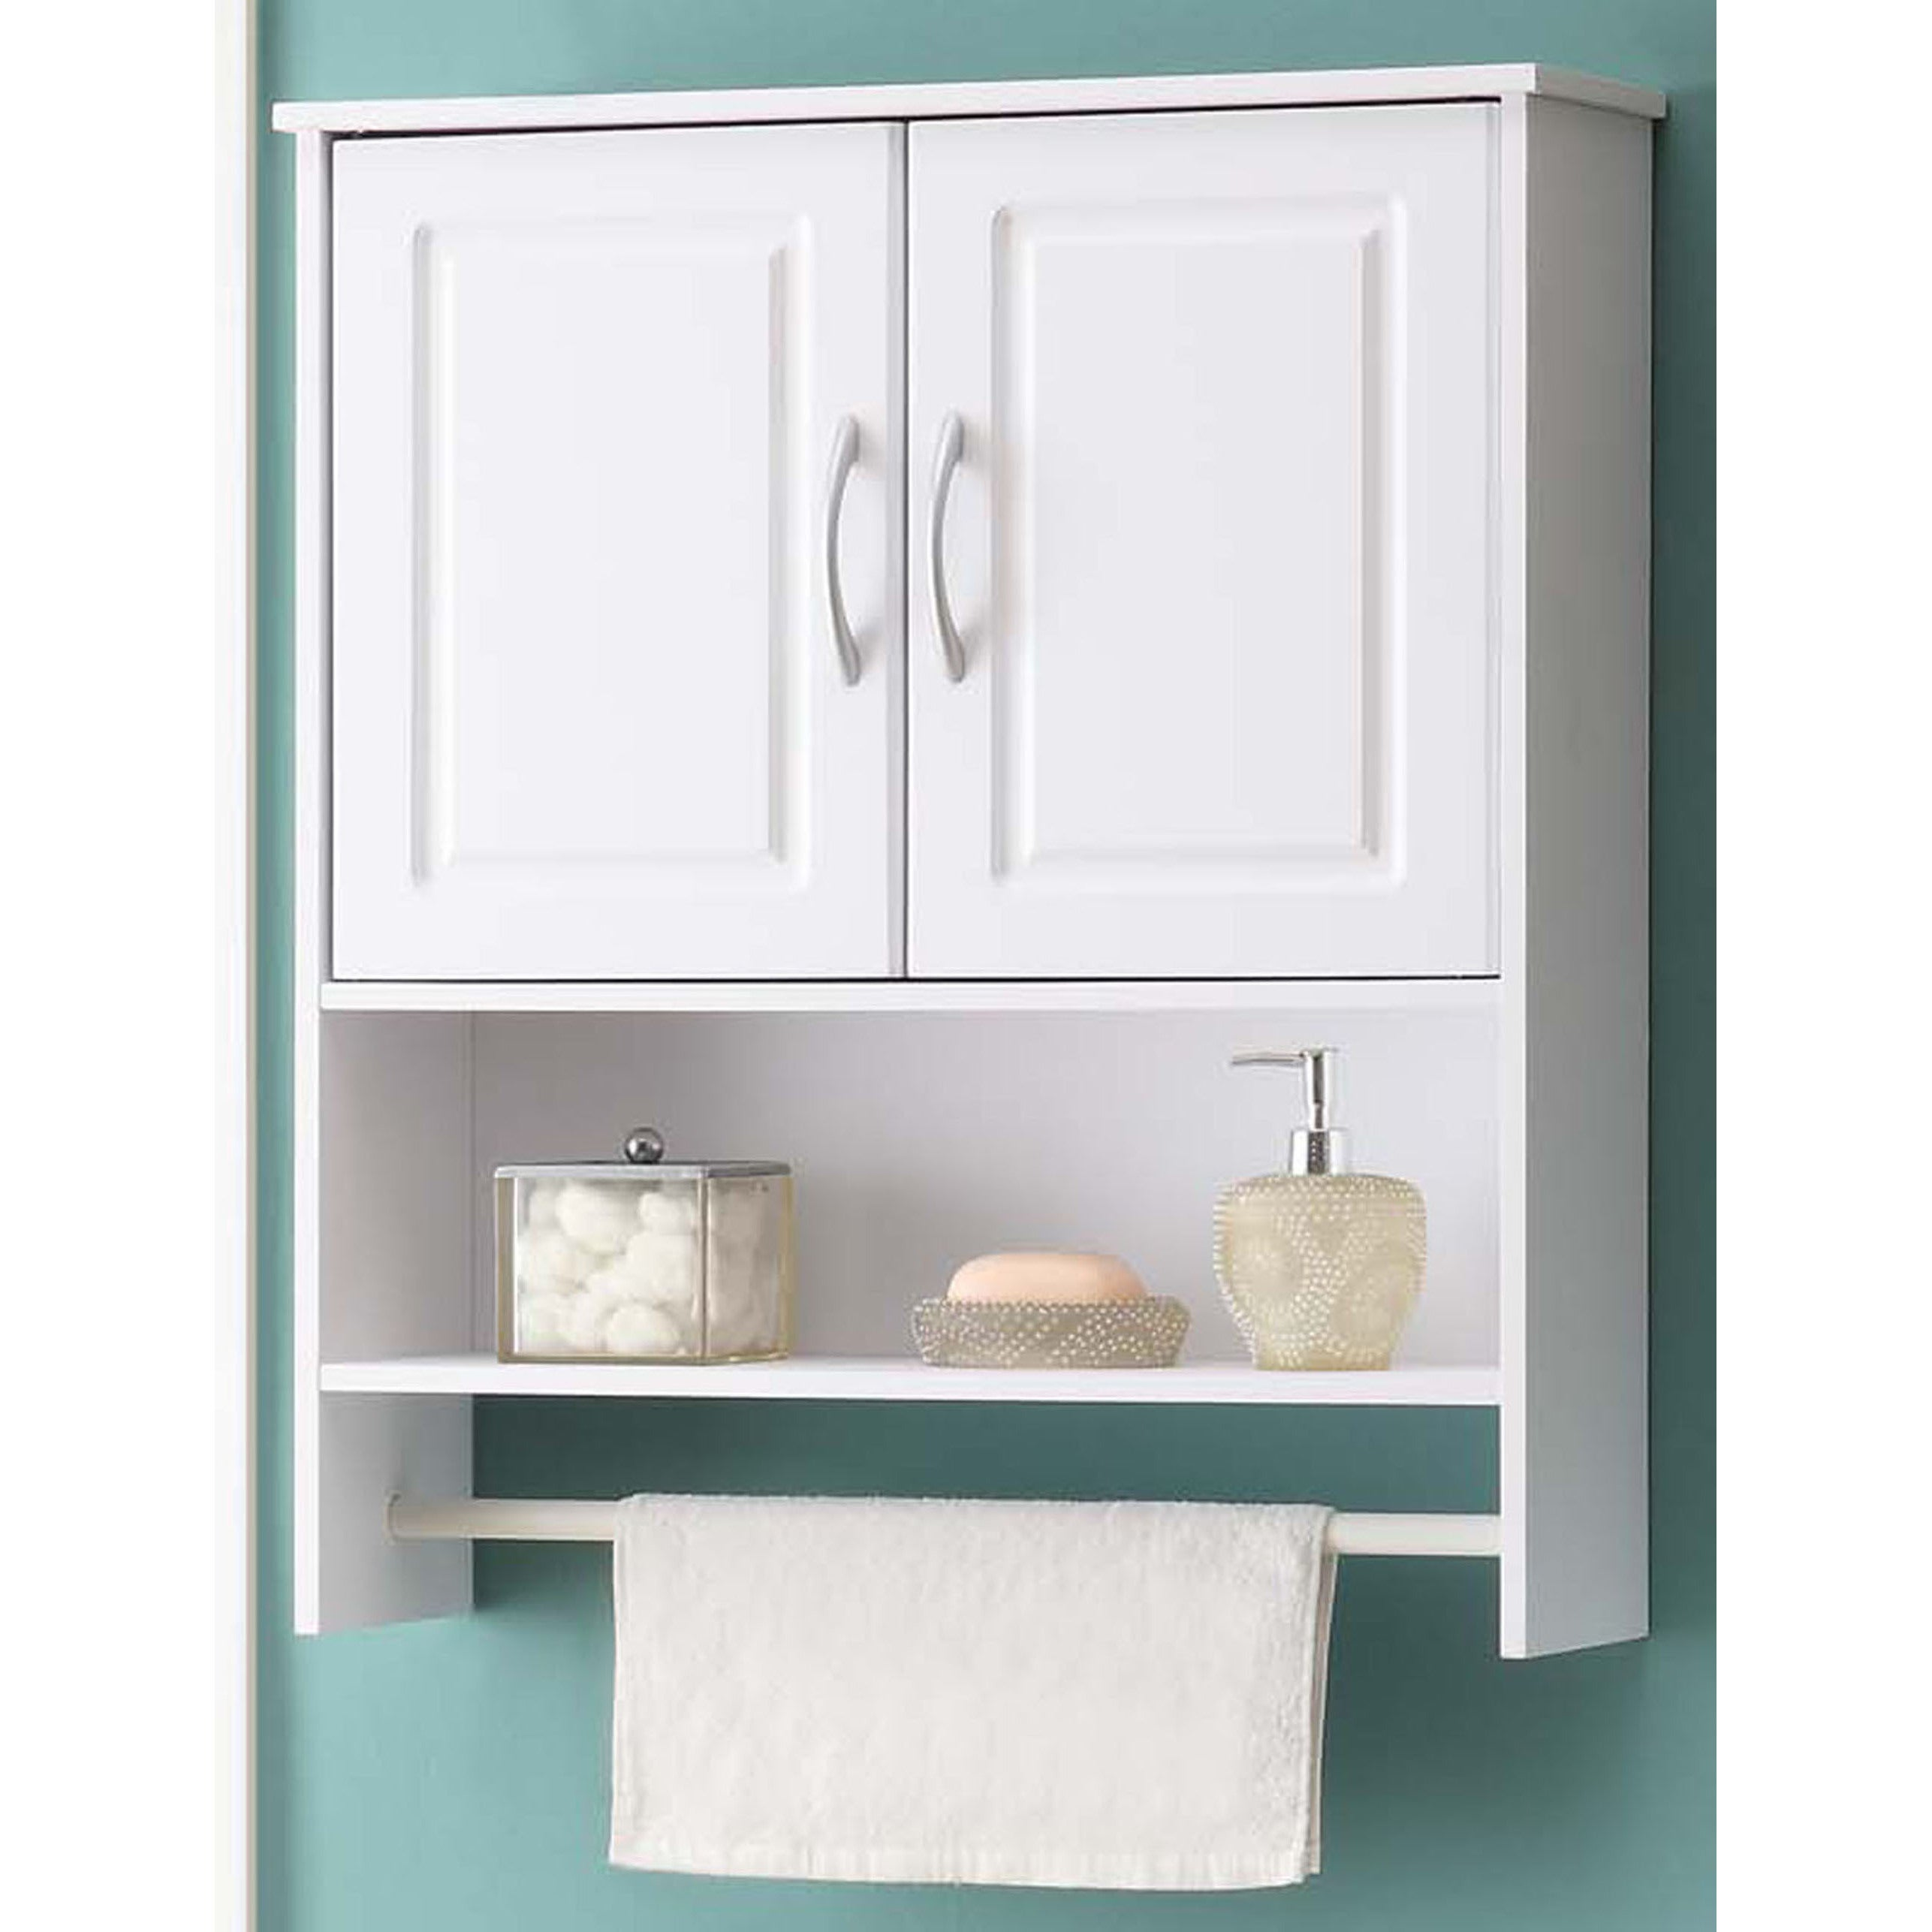 Bathroom White Water Resistant Laminate Wall Cabinet With Towel Rack On Sale Overstock 12427041